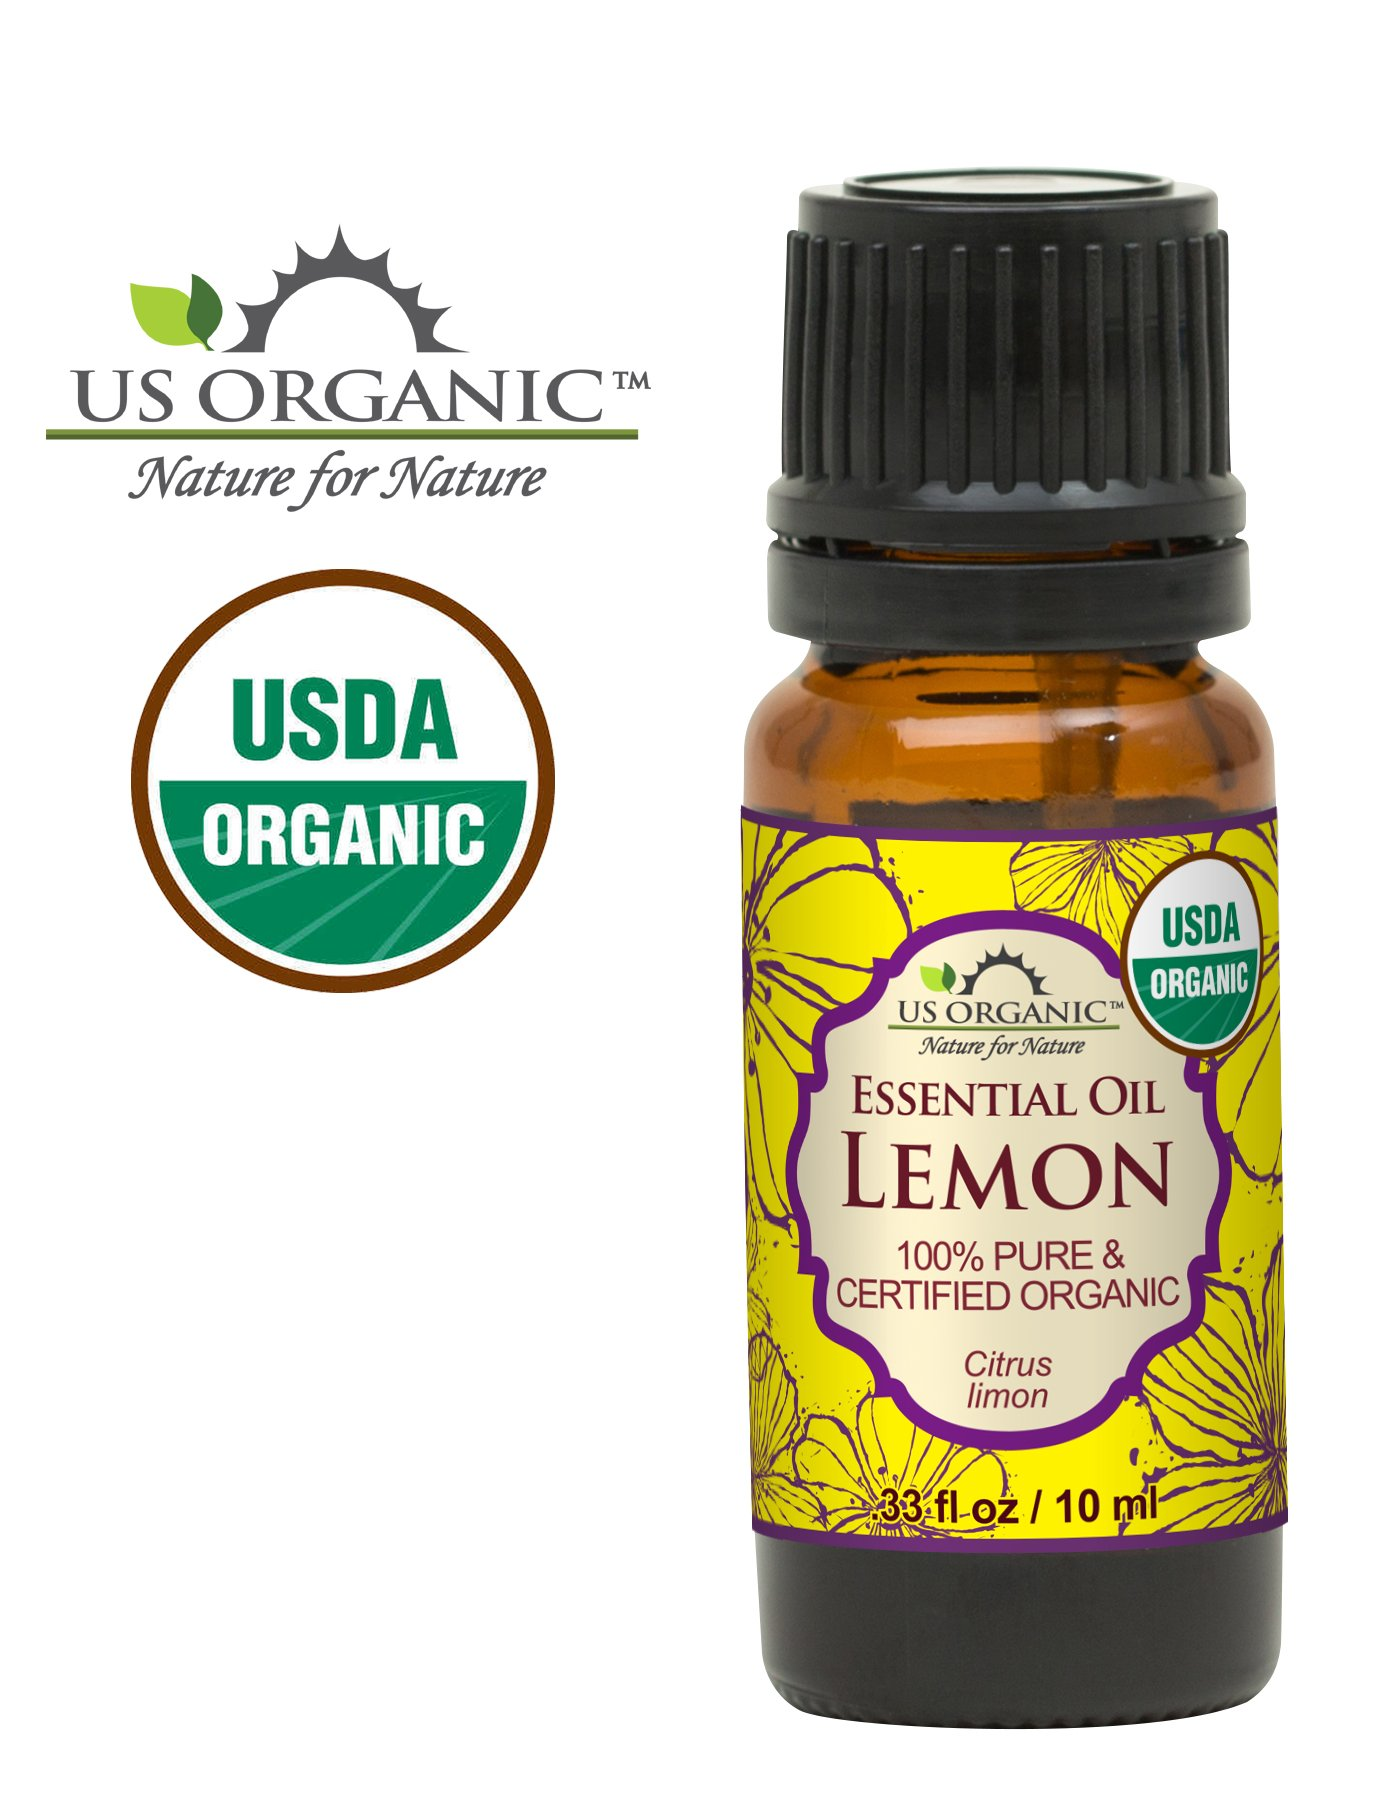 US Organic 100% Pure Lemon Essential Oil - USDA Certified Organic, Cold Pressed - W/ Euro droppers (More Size Variations Available) (10 ml / .33 fl oz)